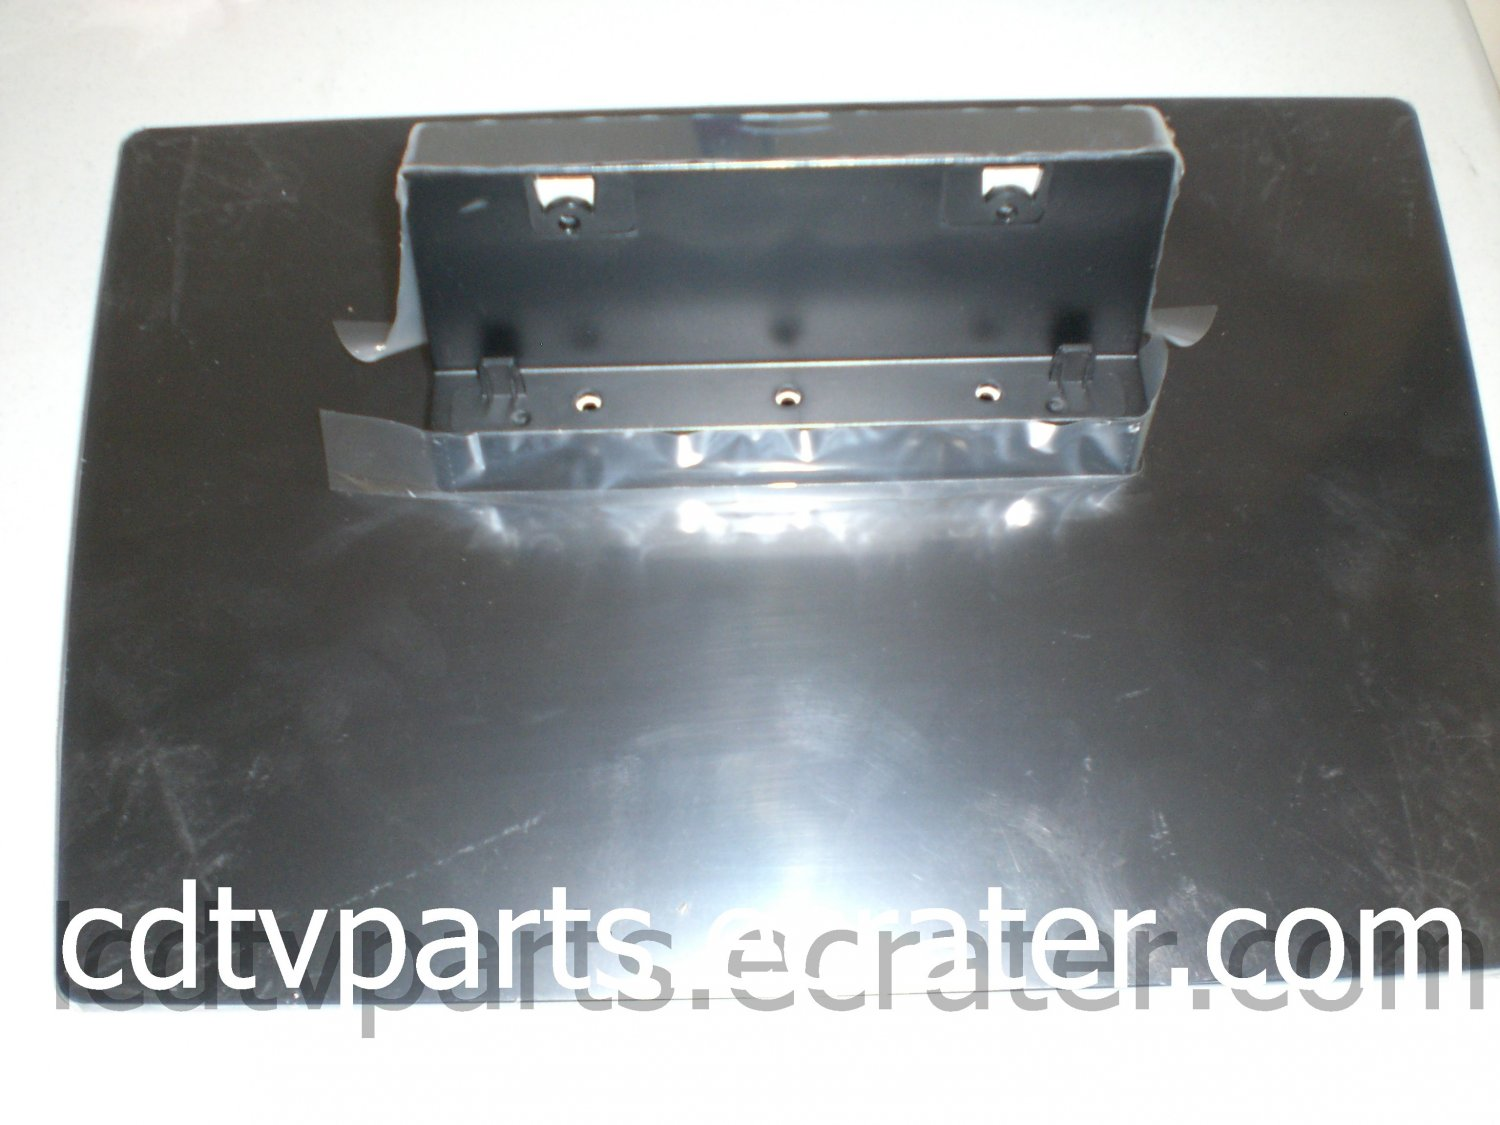 75013374, Lcd Tv Pedestal Base Stand For TOSHIBA 46RV525RZ